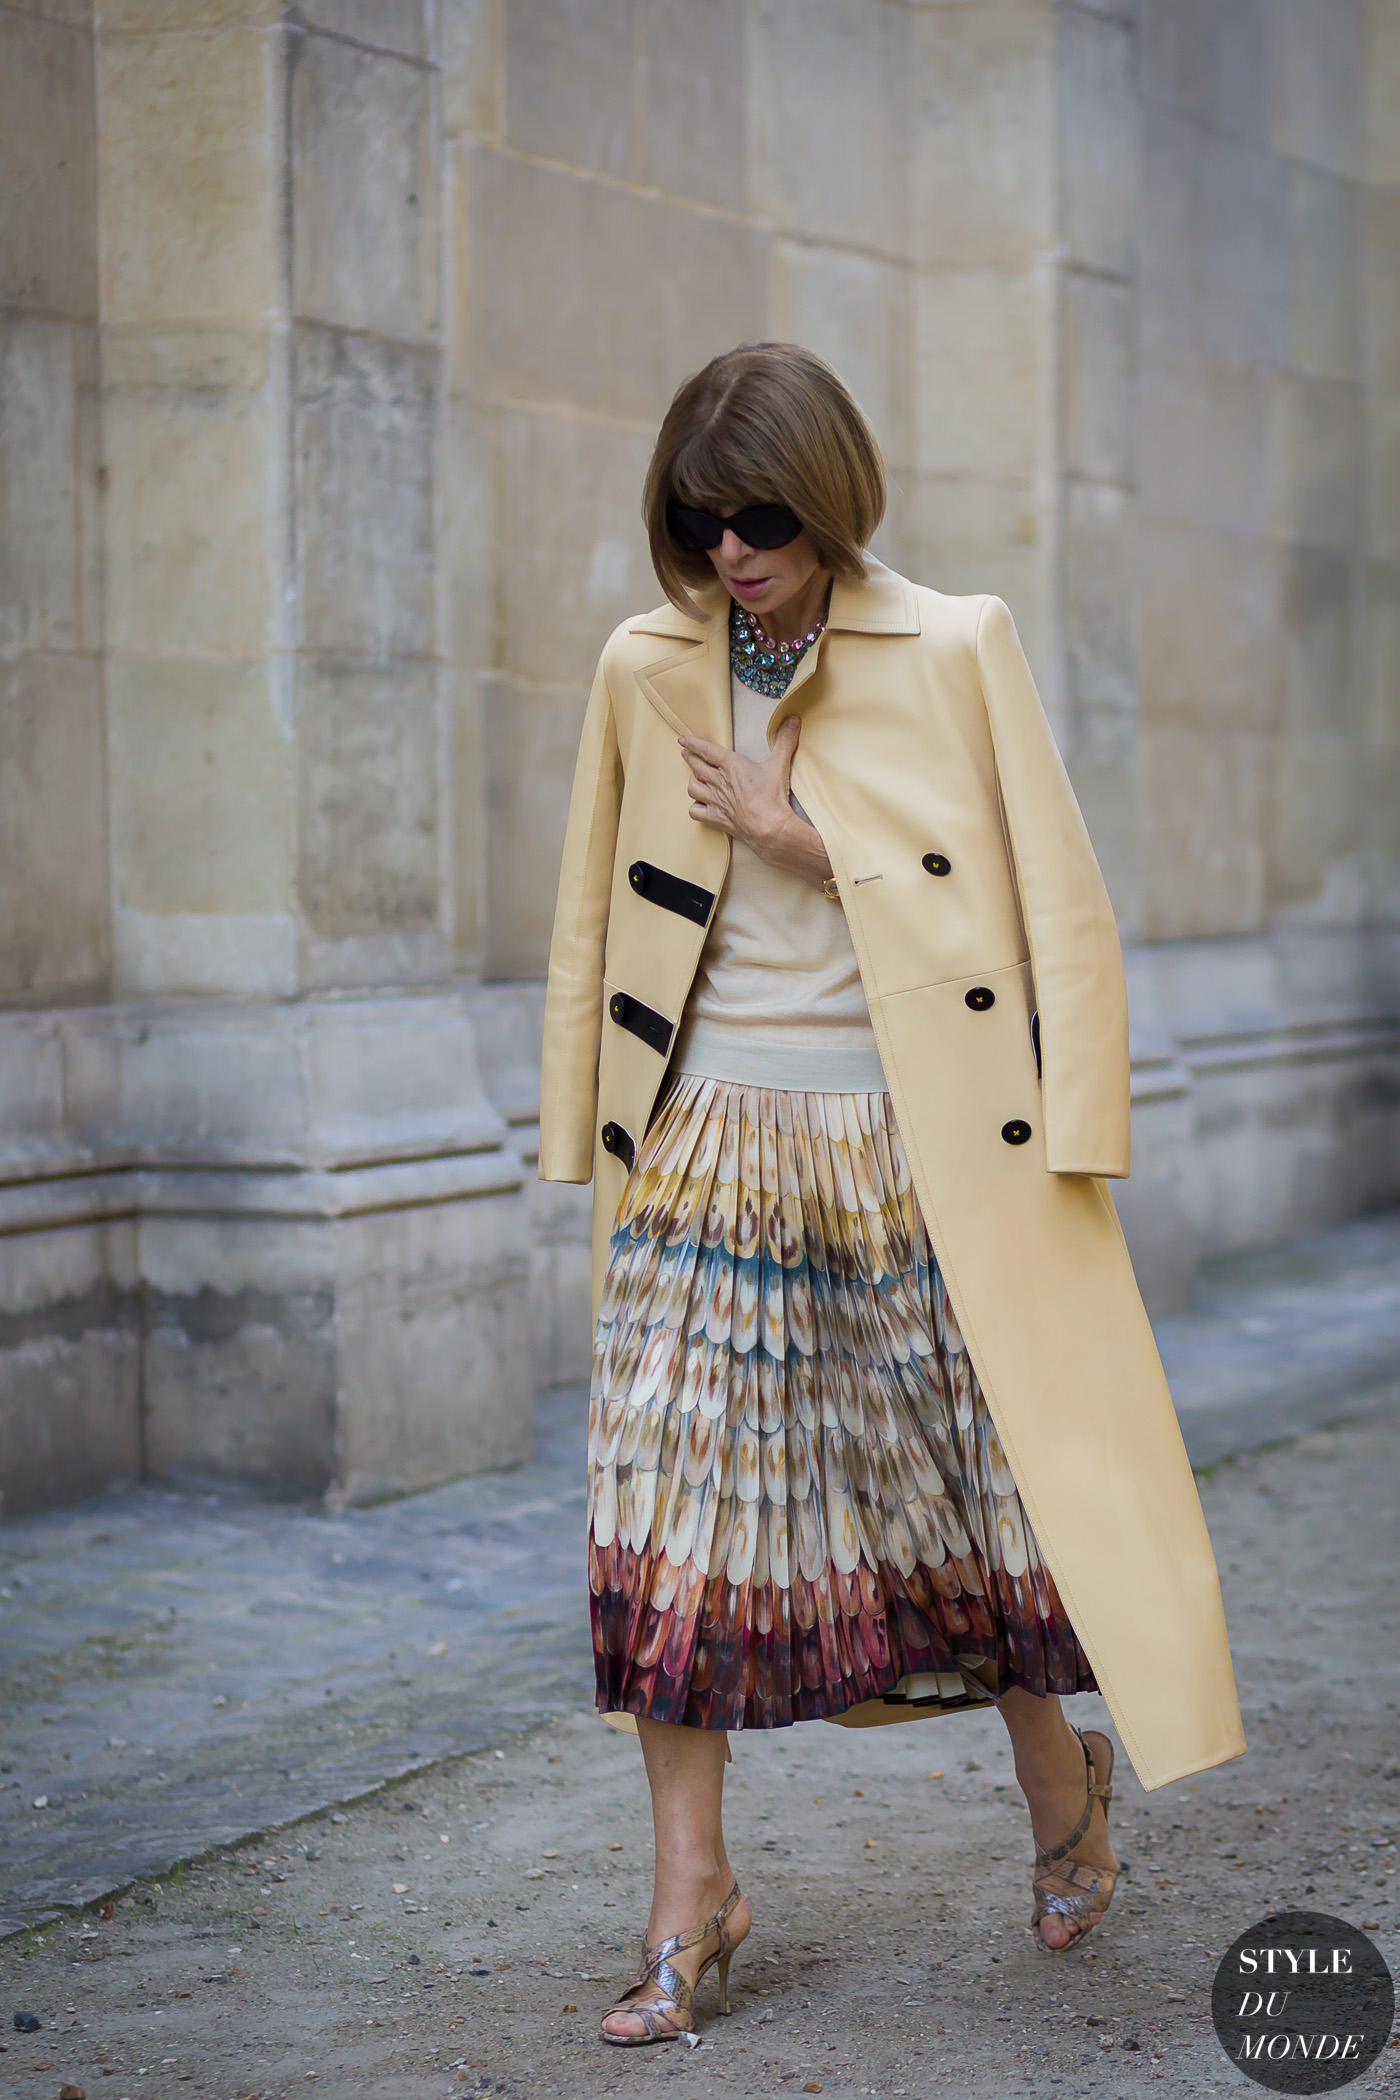 Anna Wintour Street Style Street Fashion Streetsnaps by STYLEDUMONDE Street Style Fashion Photography